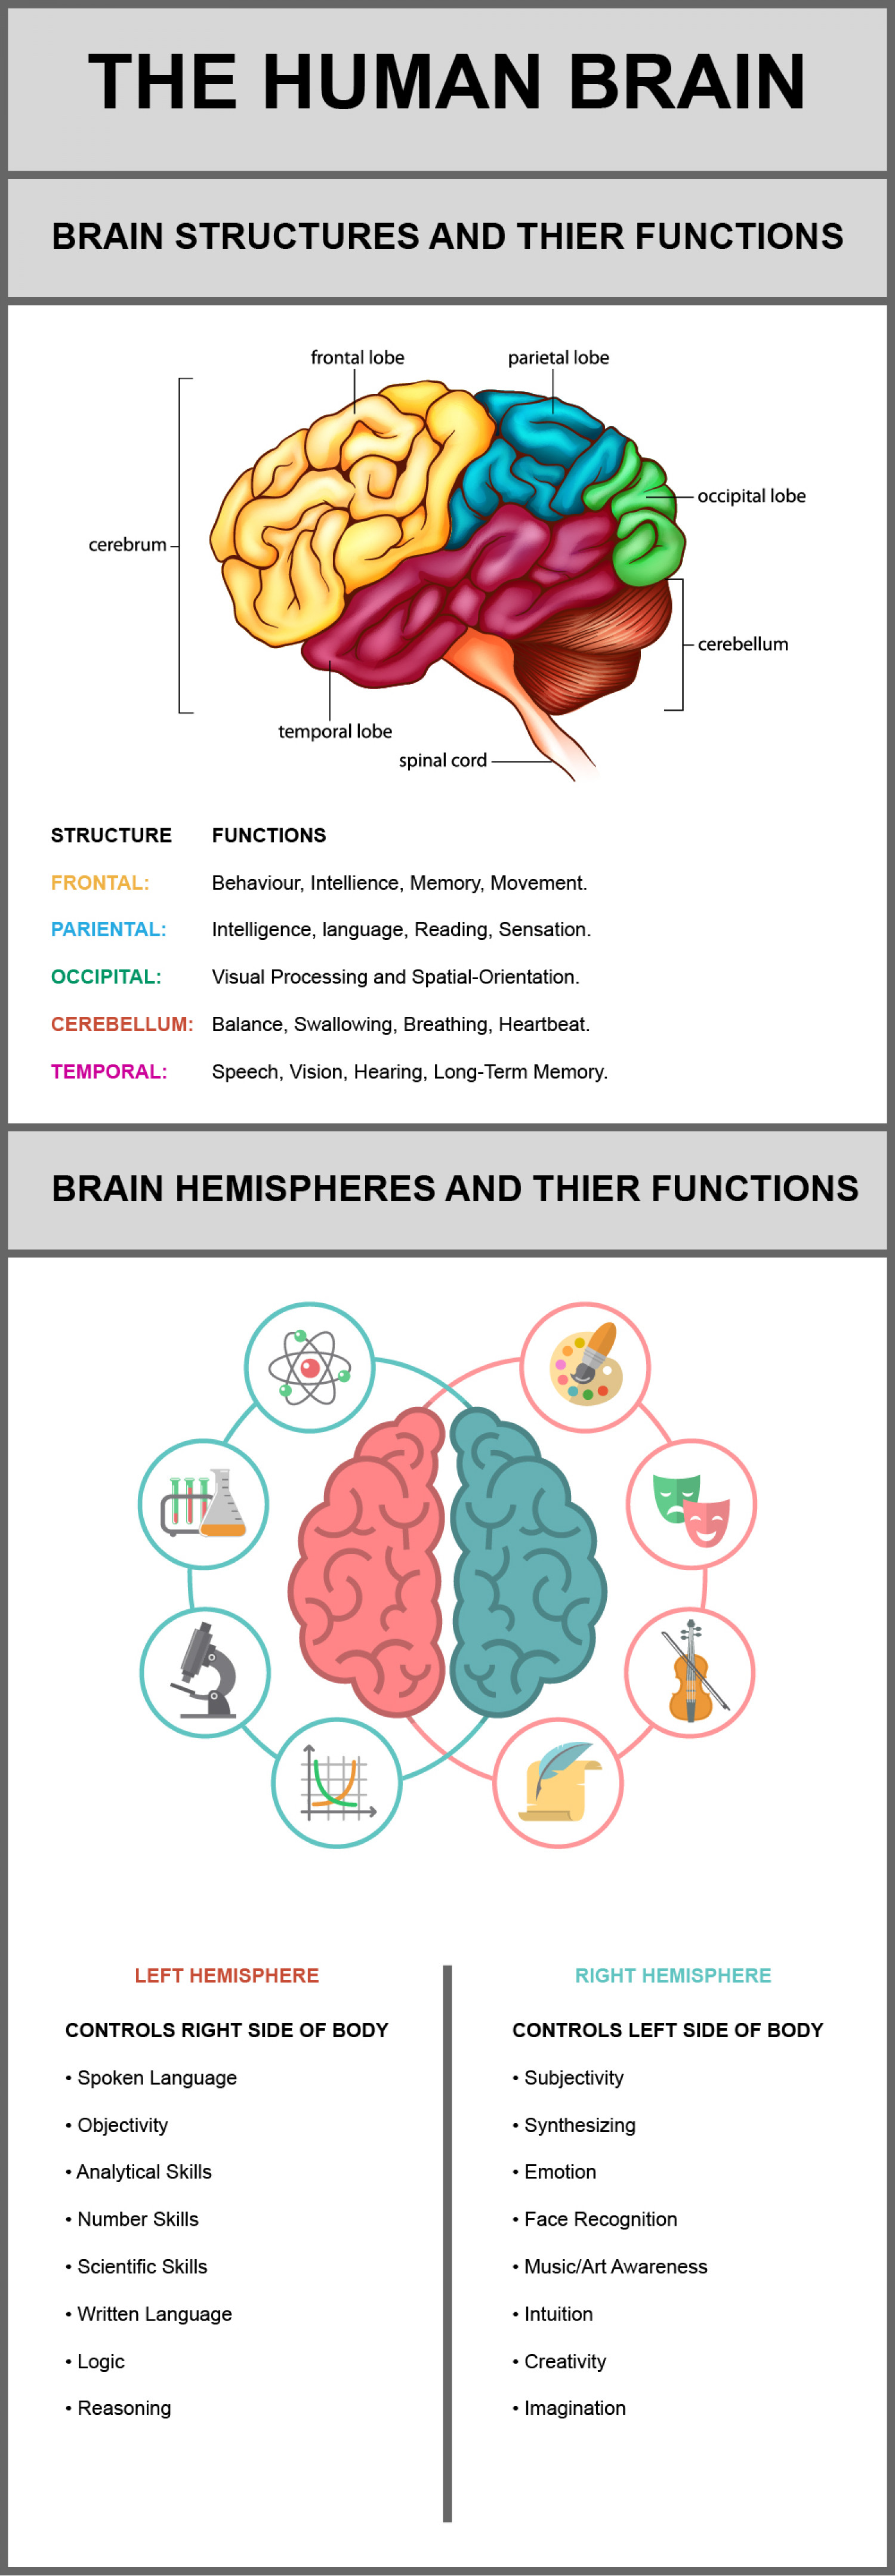 the function of the human brain To many, the cortex represents the seat of human intelligence: not only does it process information from our various senses, it also drives higher cognitive functions, such as planning, strategy and self-control.